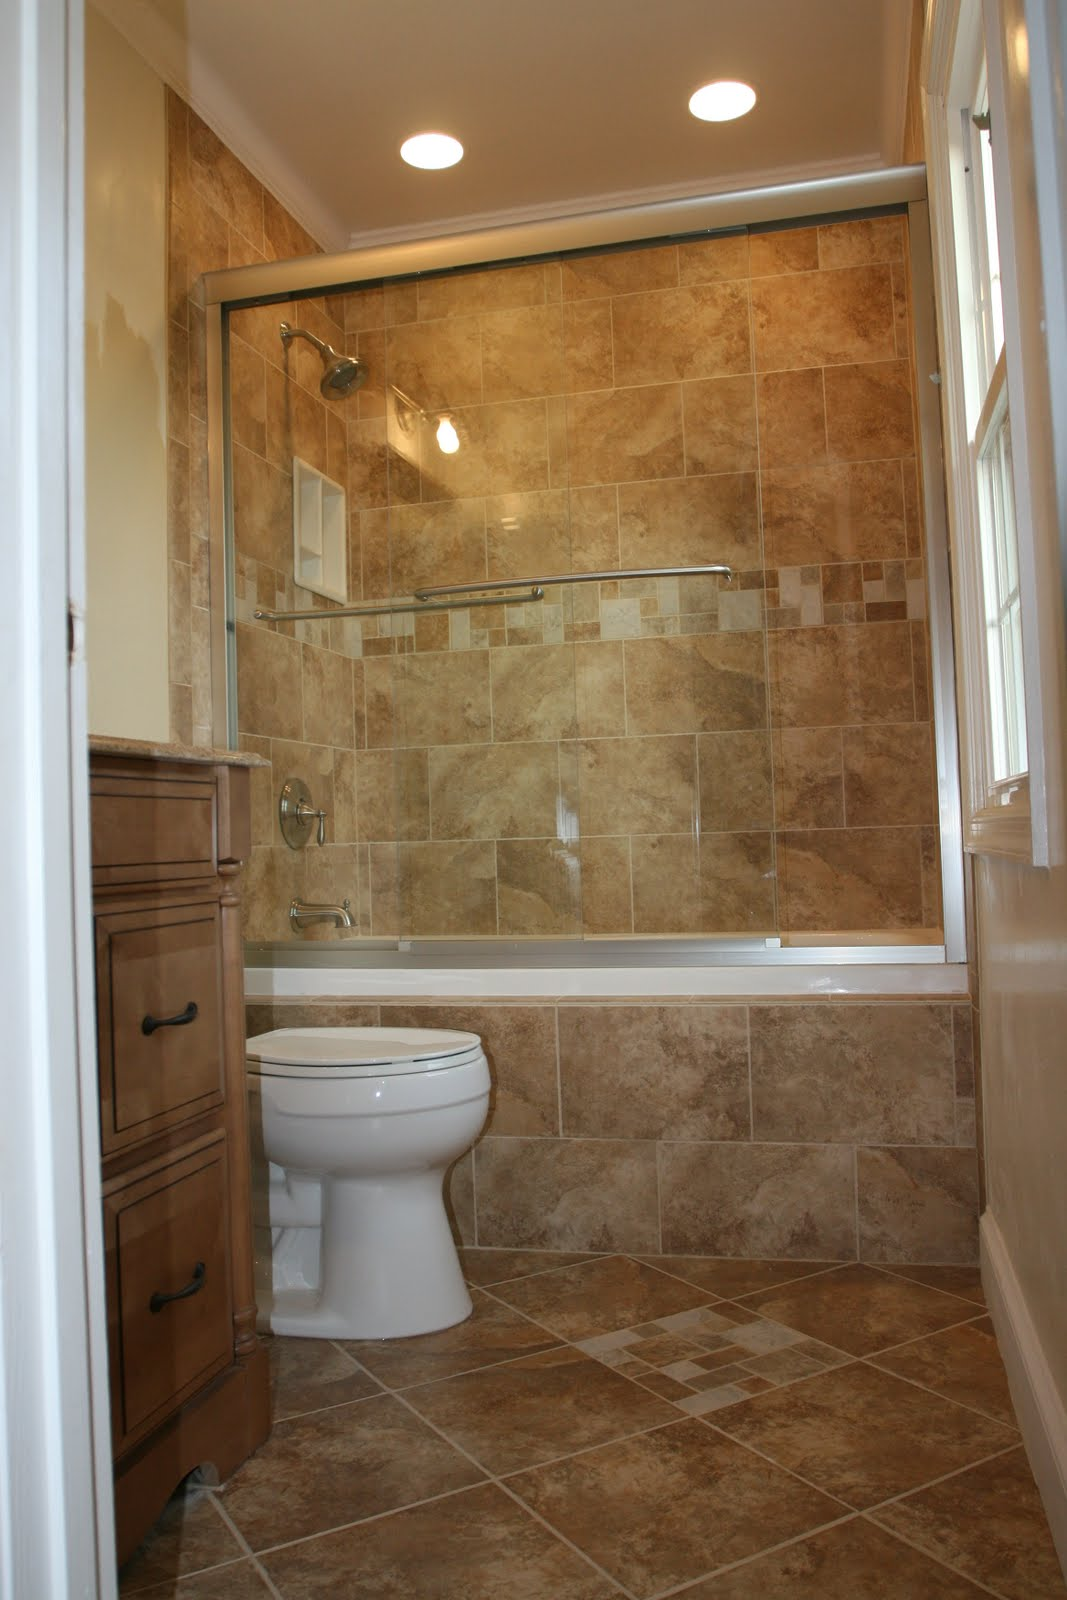 tile bathroom shower ideas bathroom remodeling design ideas tile shower niches bathroom remodeling trends design ideas 8199